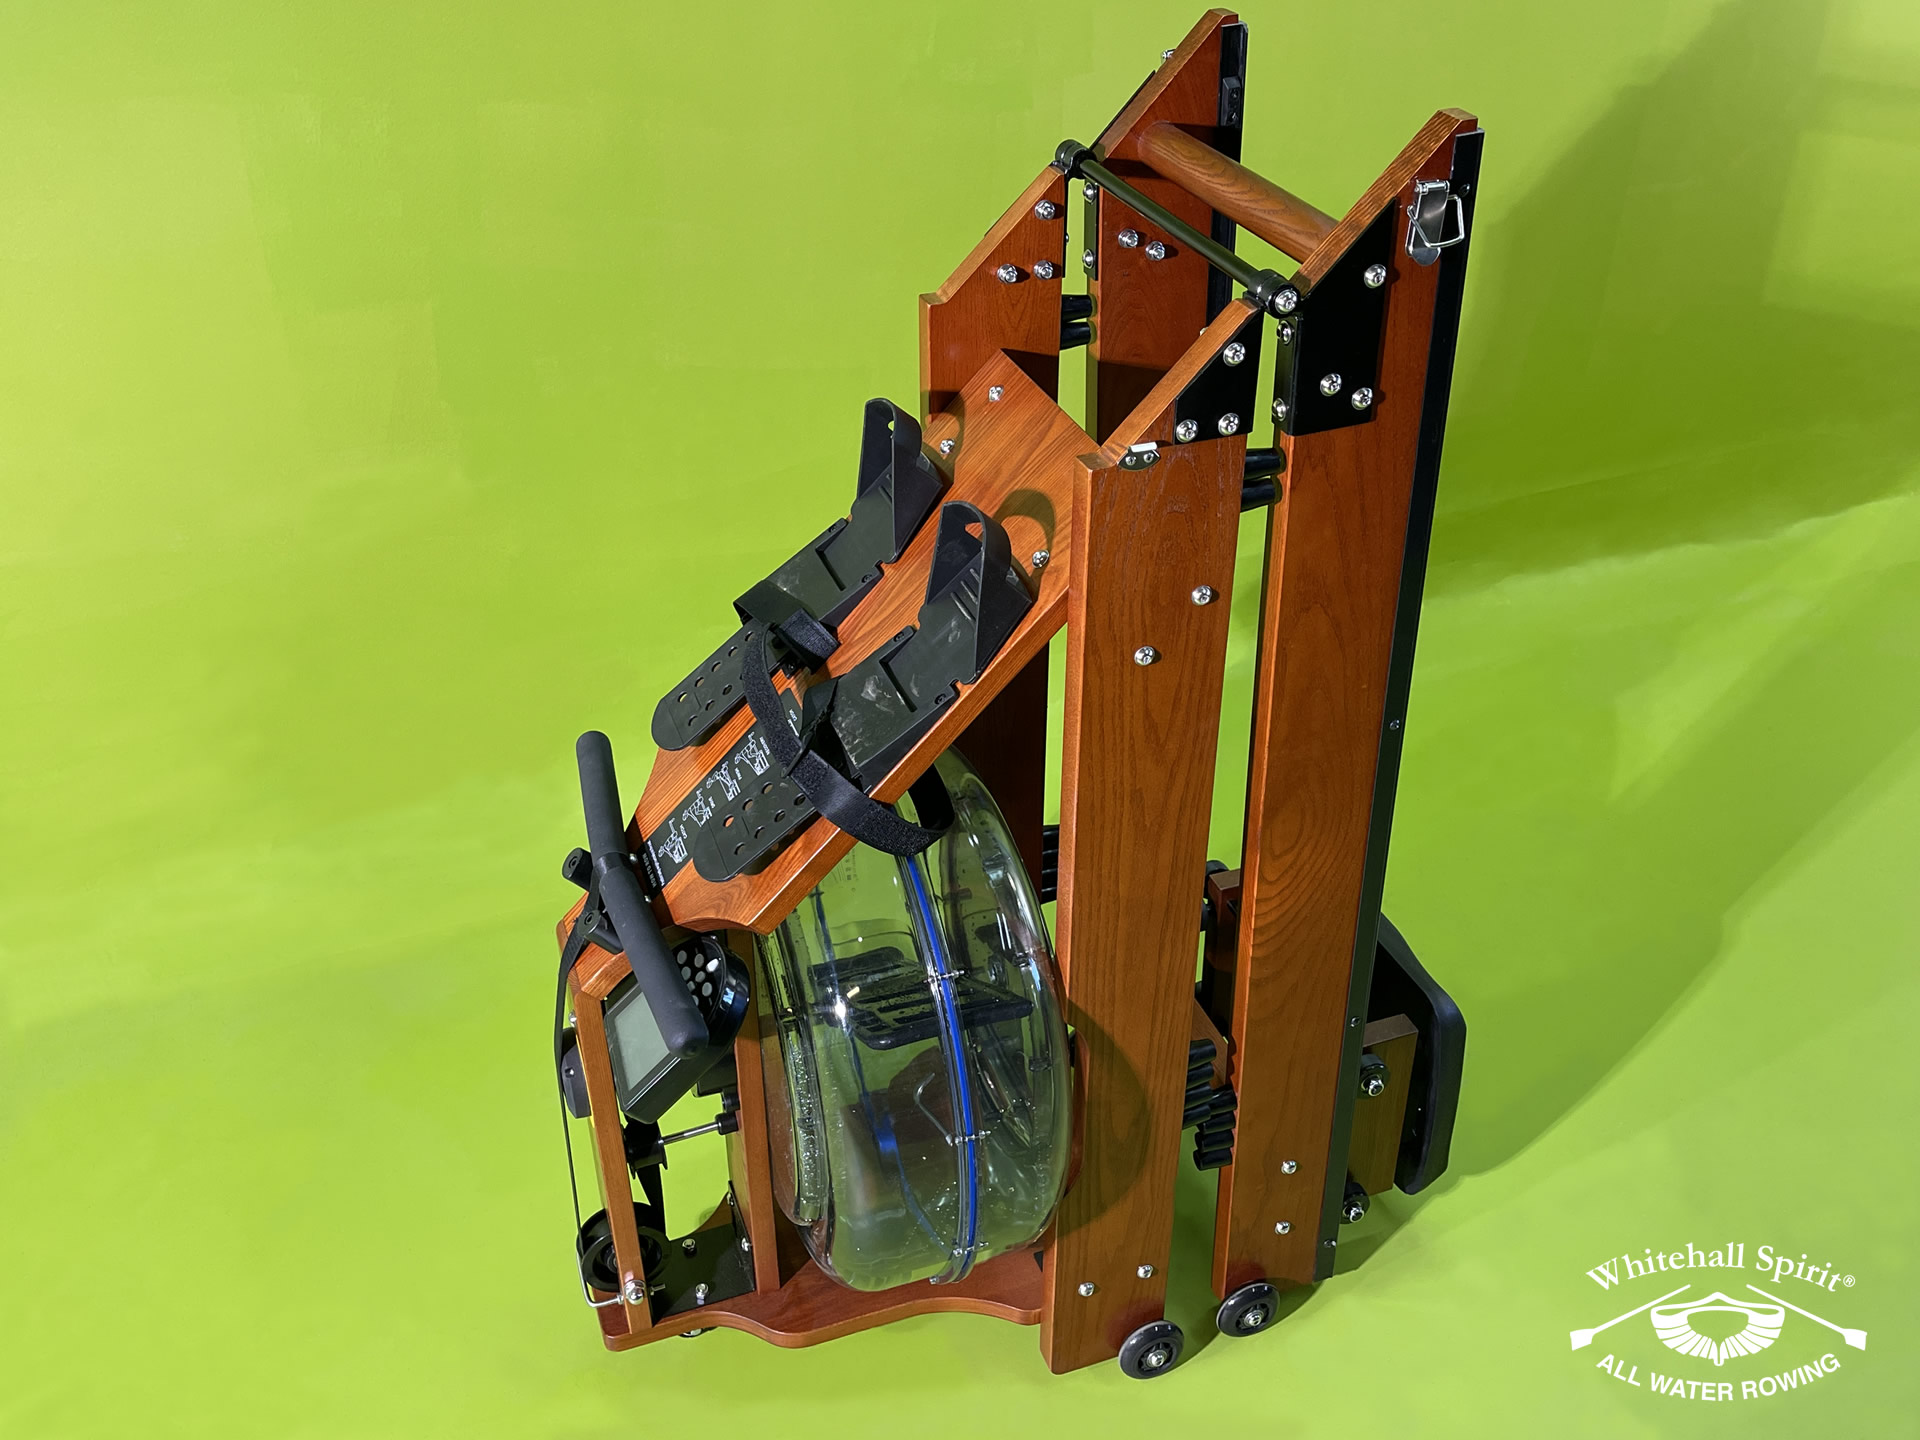 whitehall-rowing-and-sail-water-wheel-rowing-machine-wooden-foldable